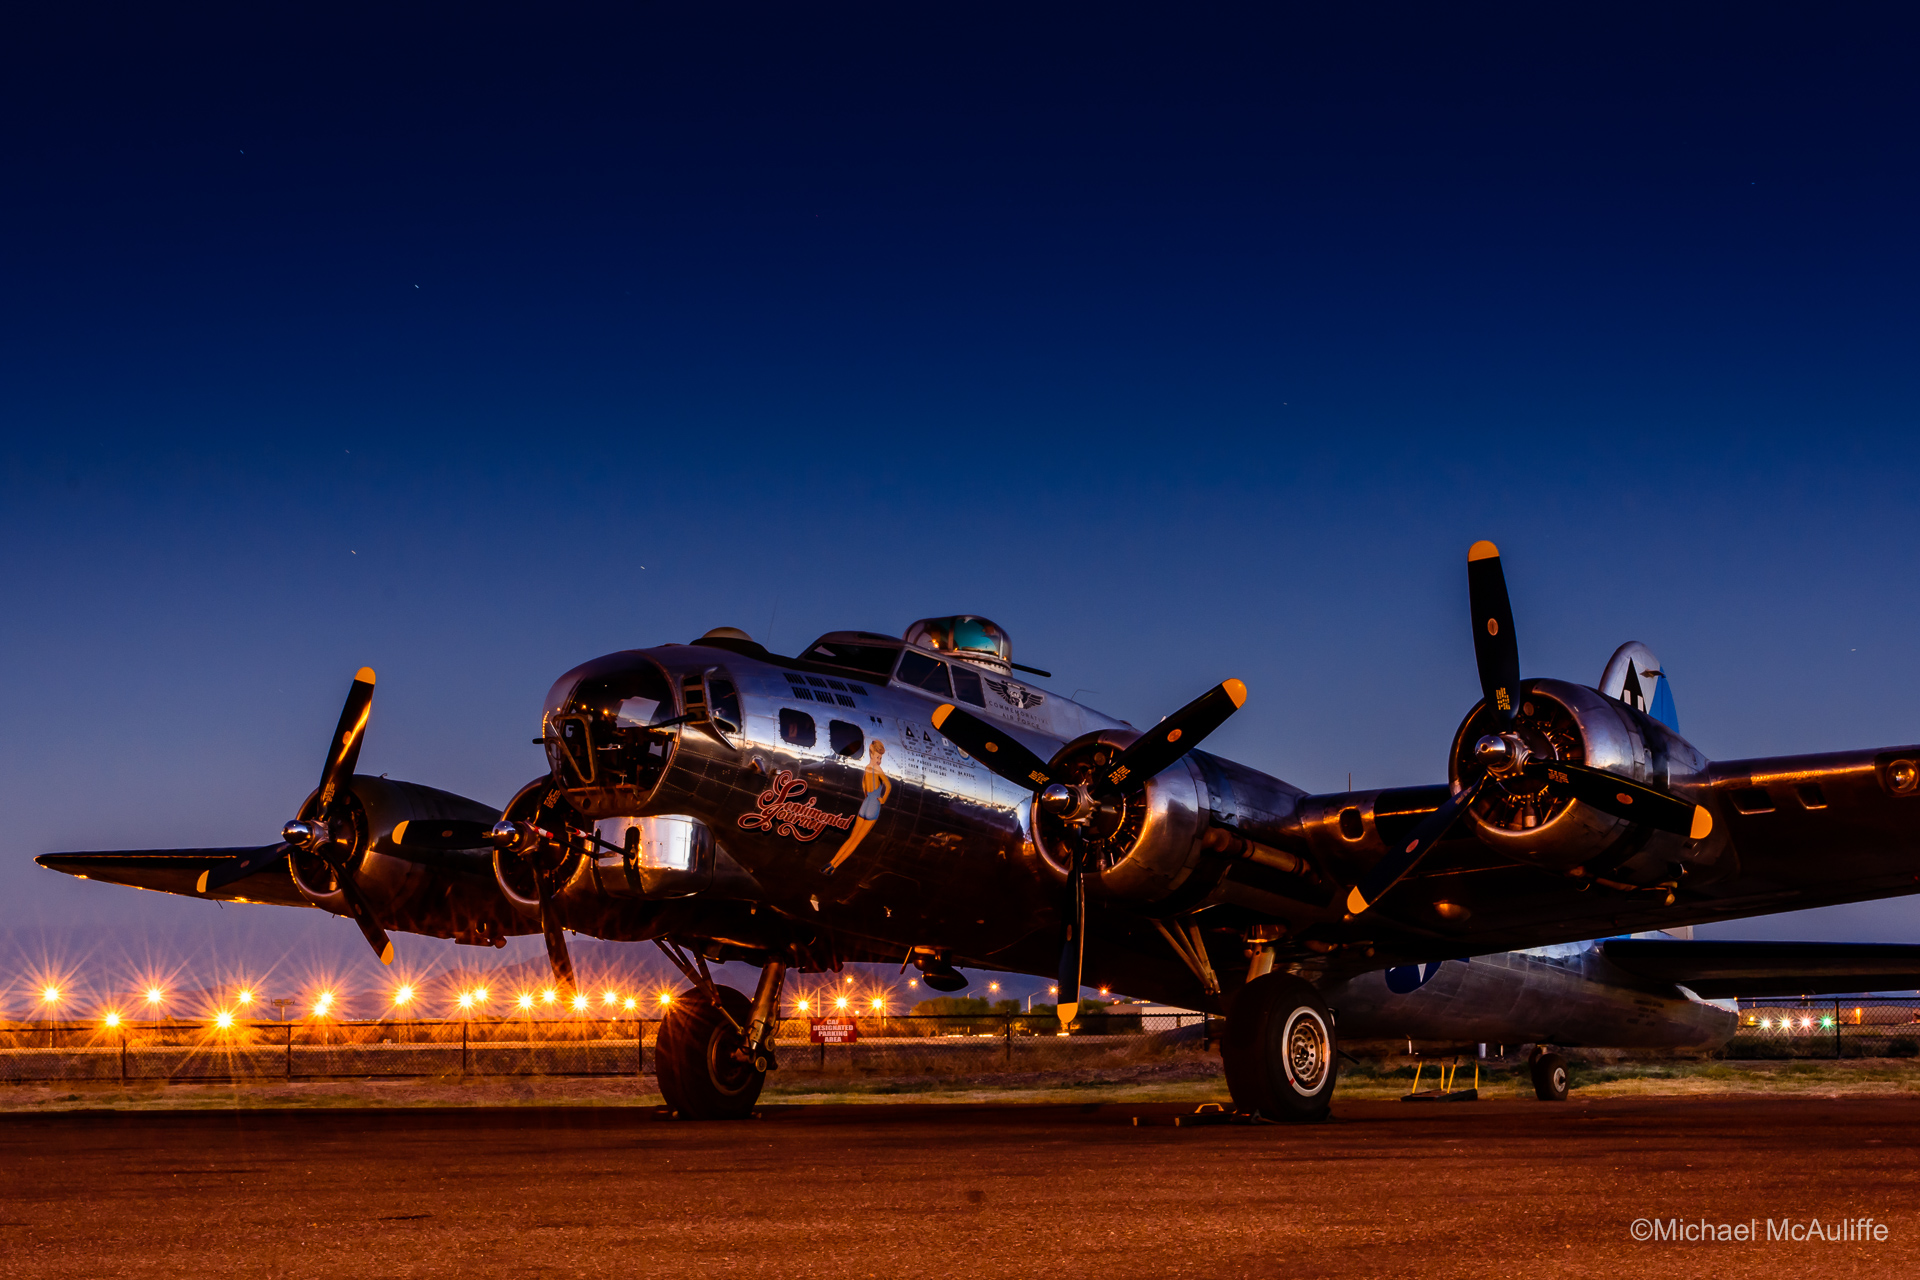 The B-17 Flying Fortress Sentimental Journey at the Arizona Commemorative Air Force Museum.